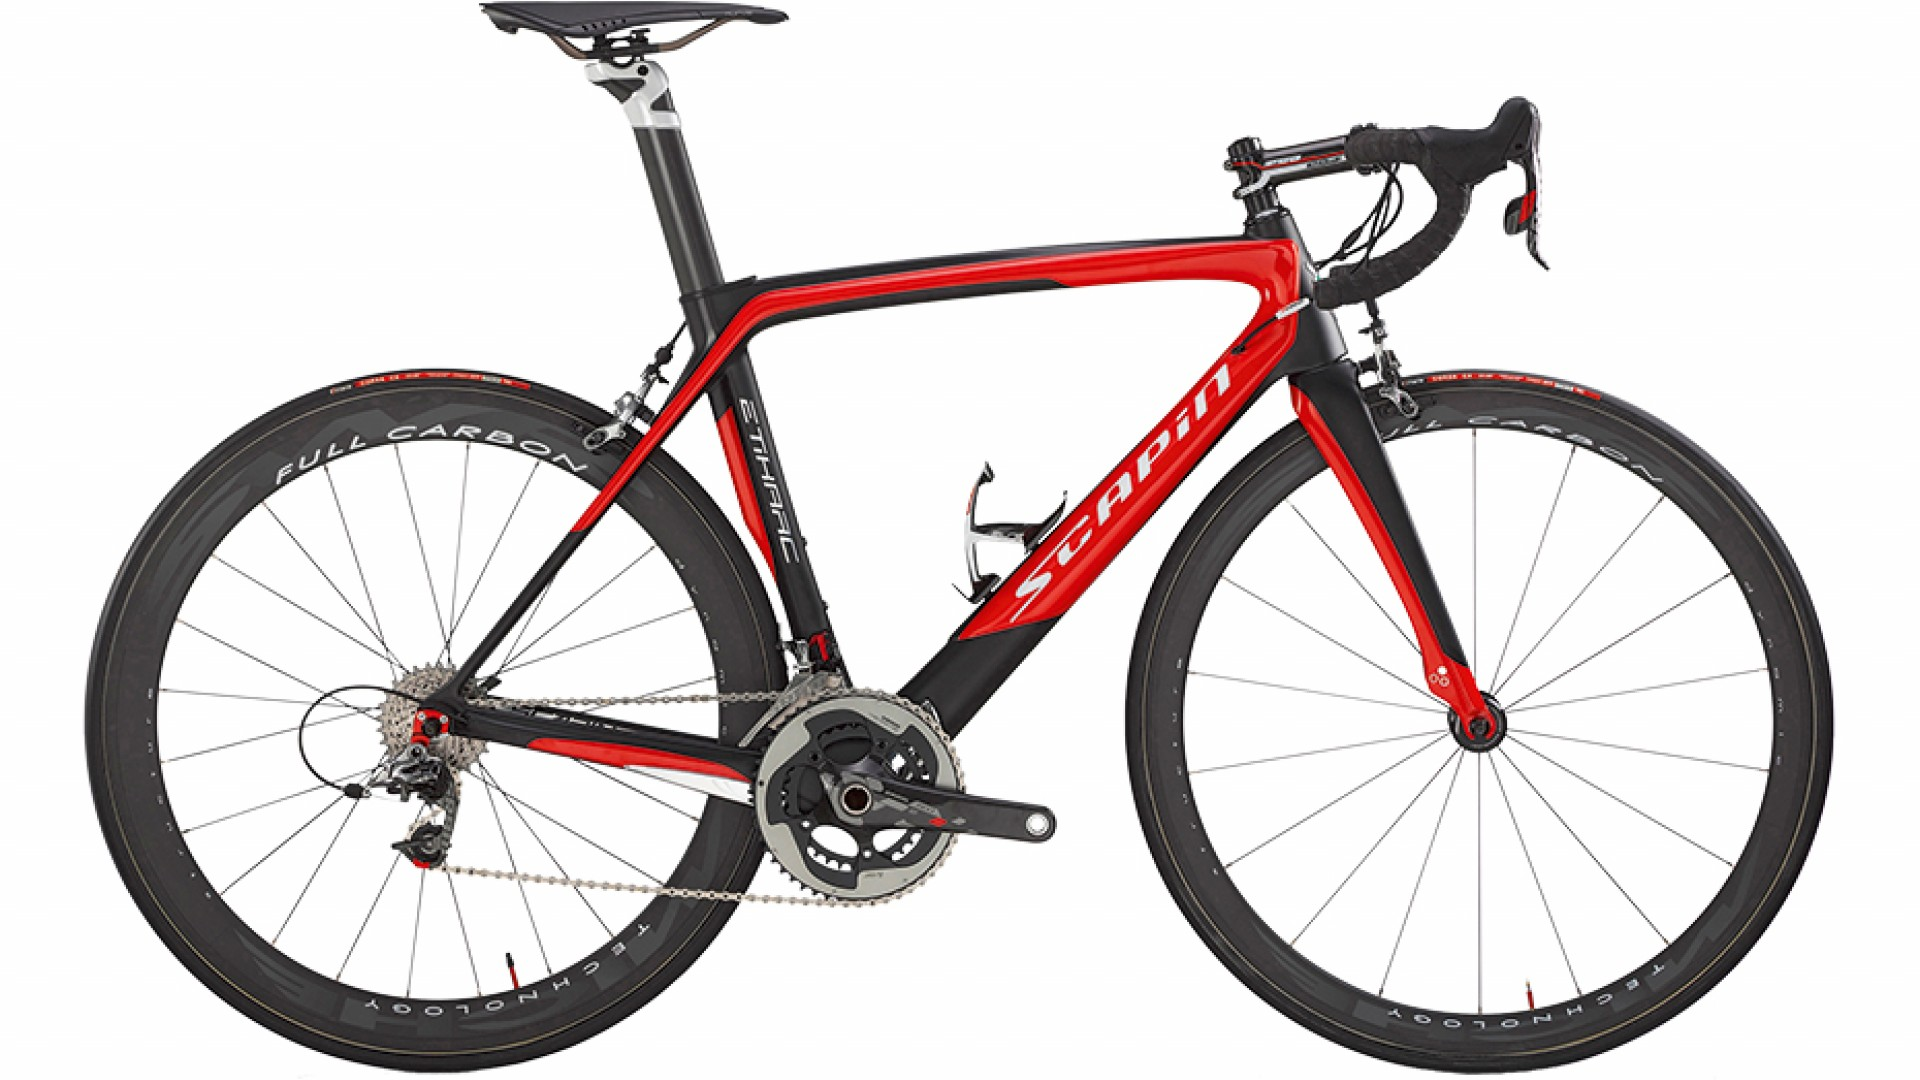 Scapin Etika RC, £7,386  Light, stiff and ready to race, Scapin's flagship ride is a bona-fide, Italian-bred superbike, with the looks to match.